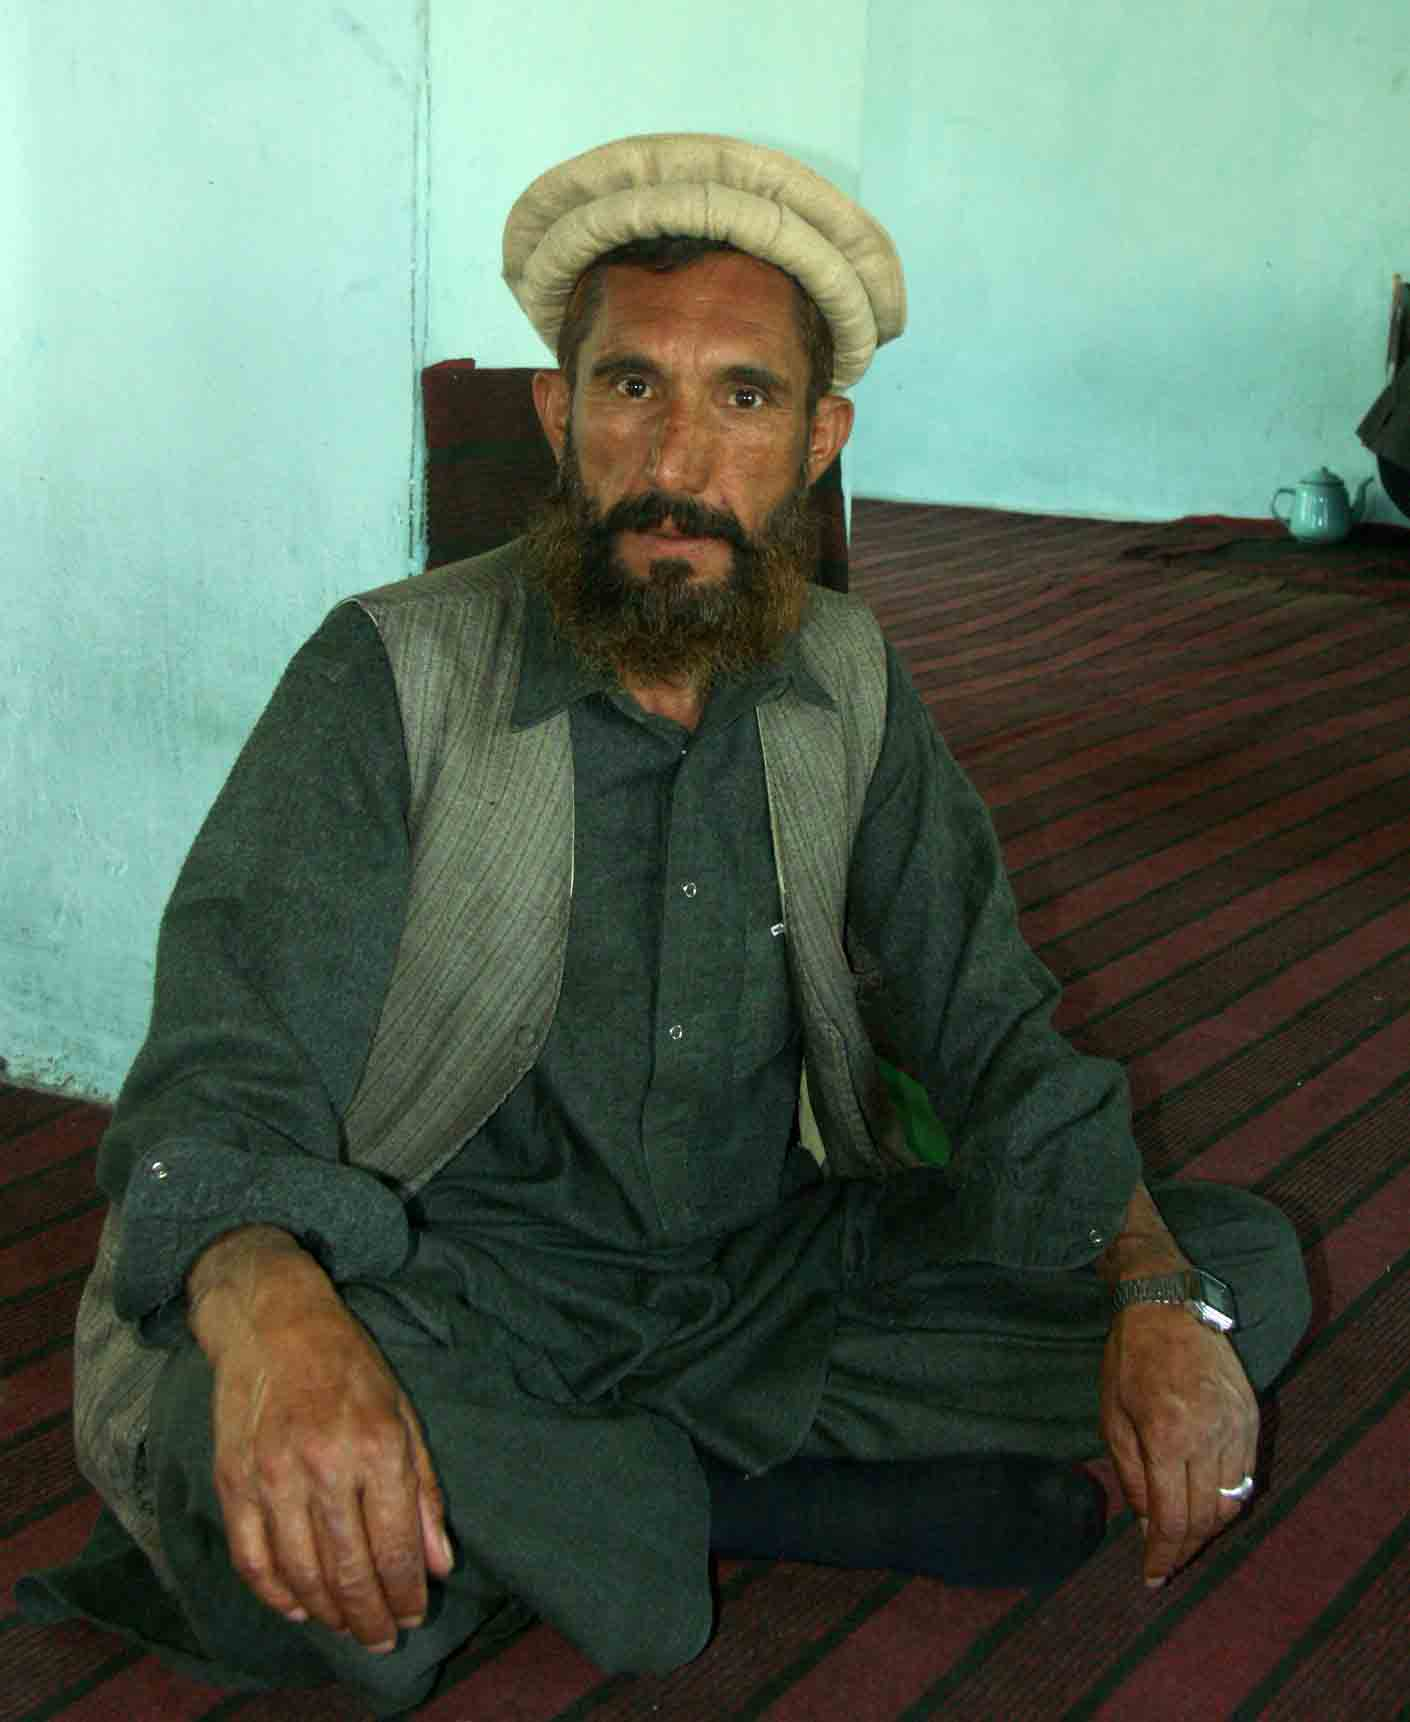 intense afghani in rural village author downs jim